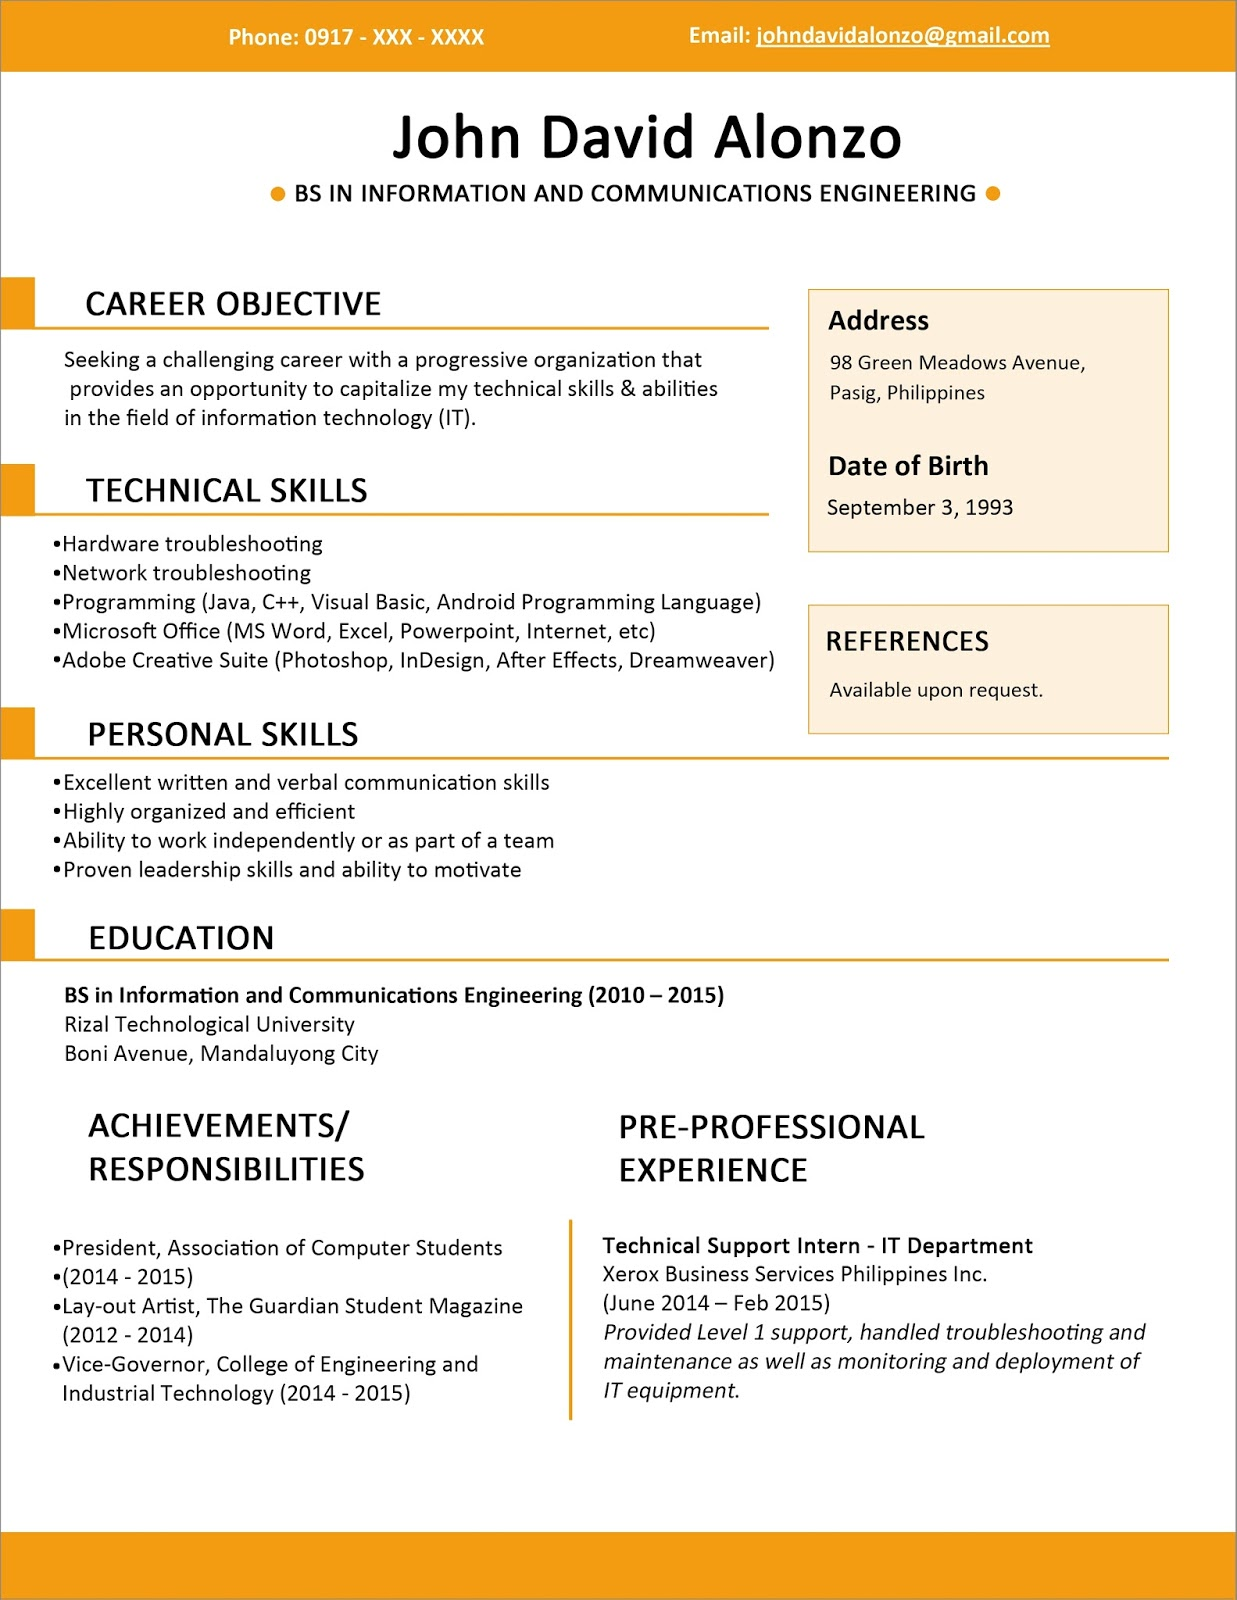 resume templates and resume building tools are you with me